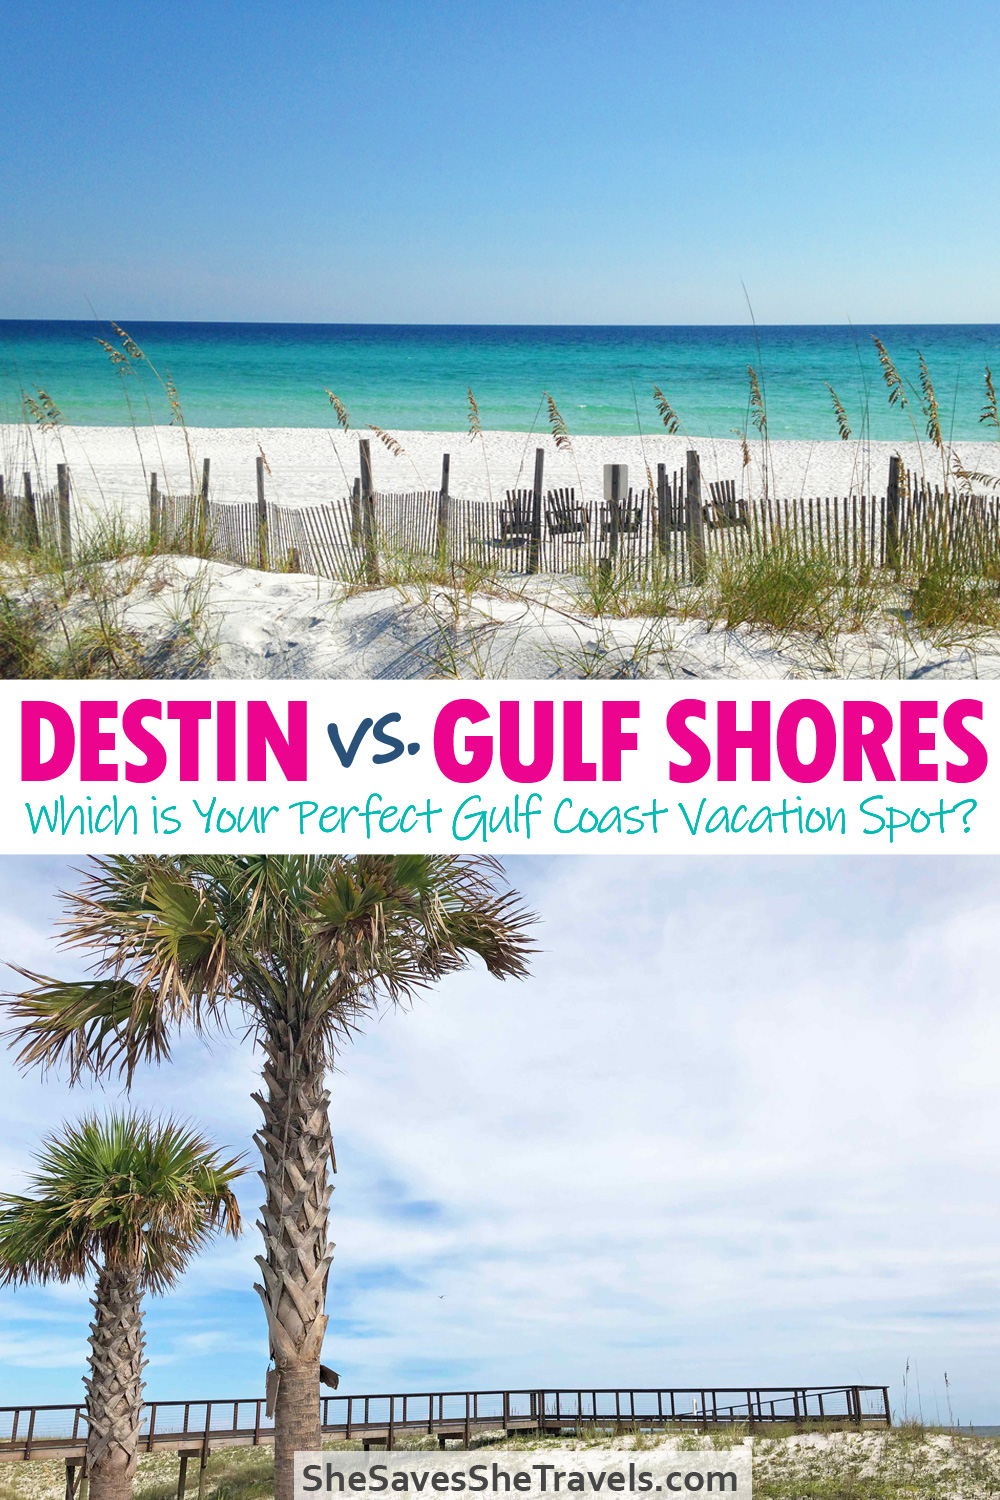 Destin vs Gulf Shores - which is your perfect Gulf Coast vacation spot?